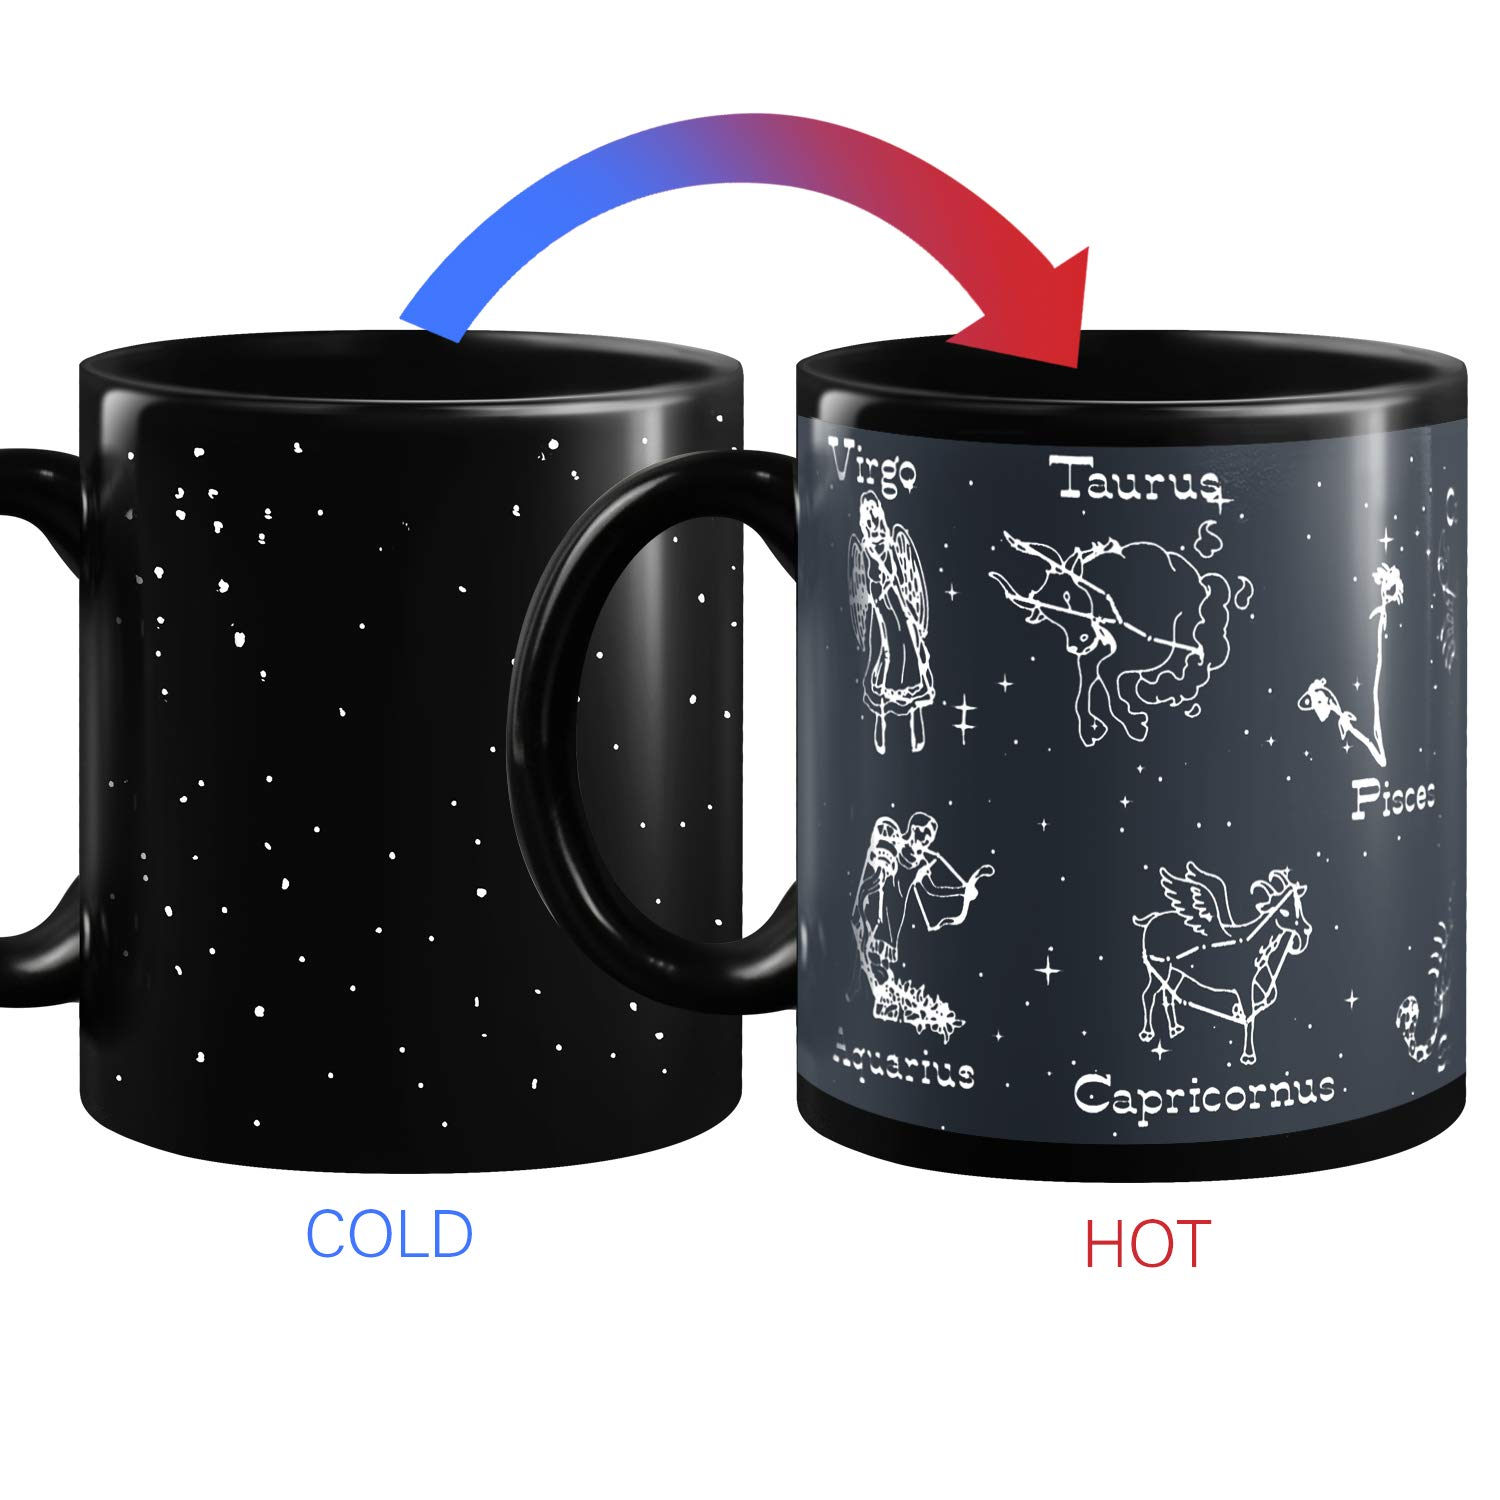 Heat Changing Constellation Mug 12 OZ Sensitive Solar System Coffee Cup System Space Mugs Astronomy Porcelain Tea Cup